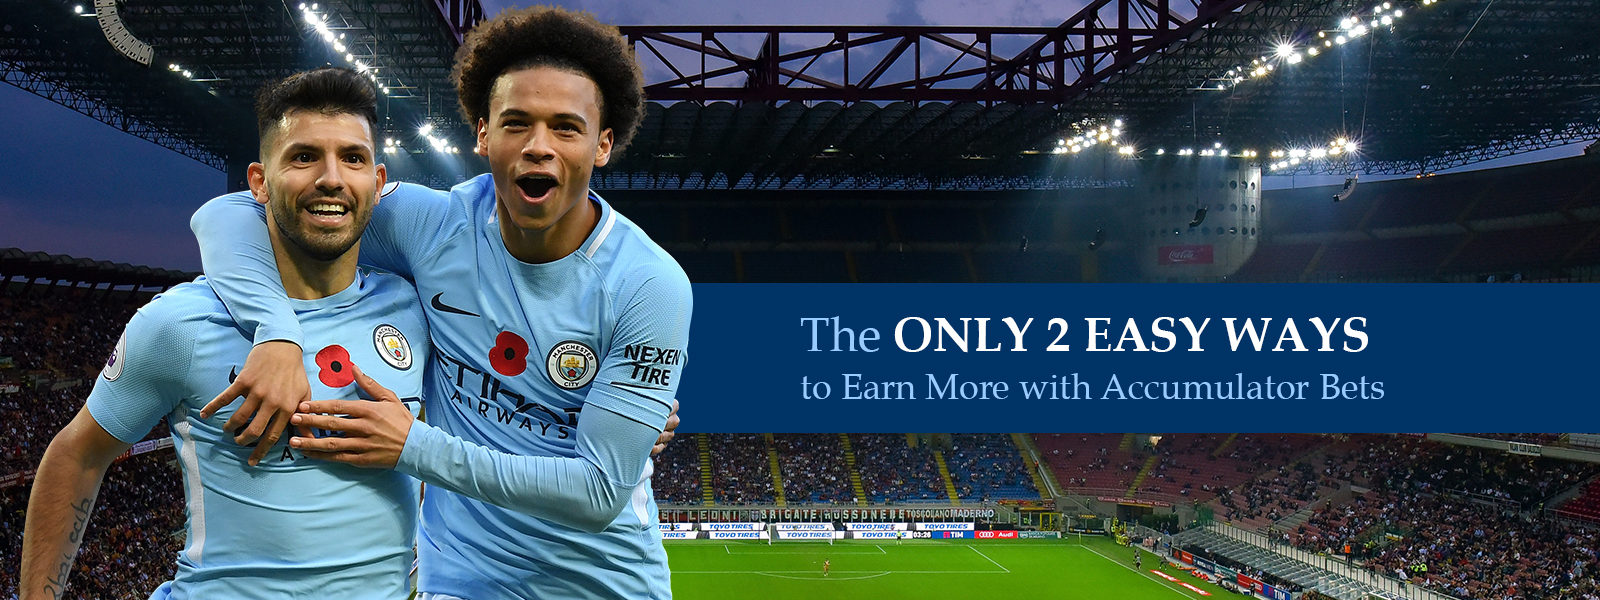 2 Easy Ways to Earn More With Accumulator Bets